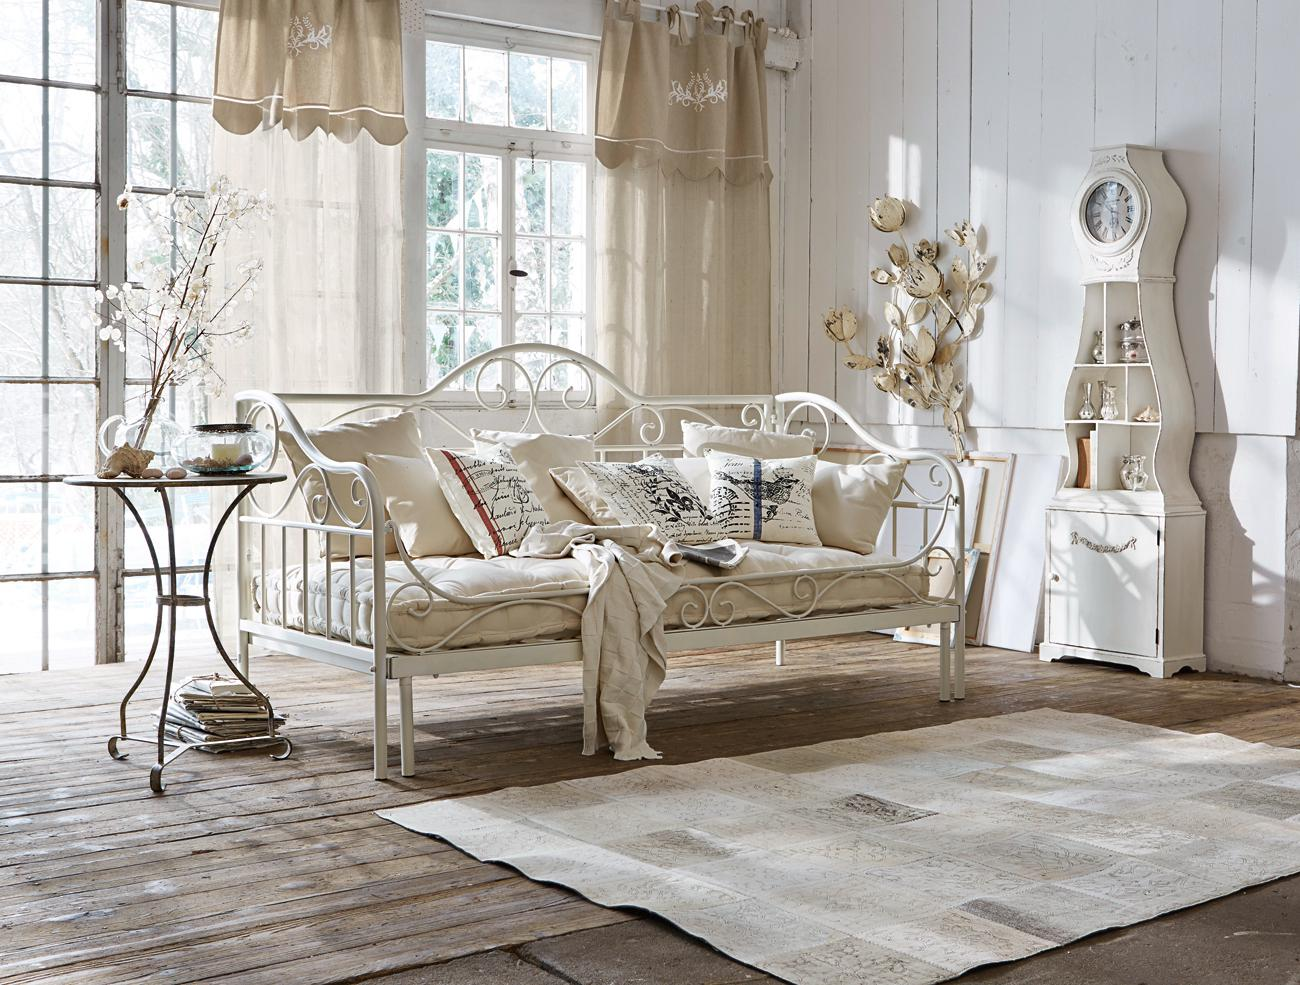 Vintage Schlafzimmer | Vintage Schlafzimmer Bilder Ideen Couchstyle